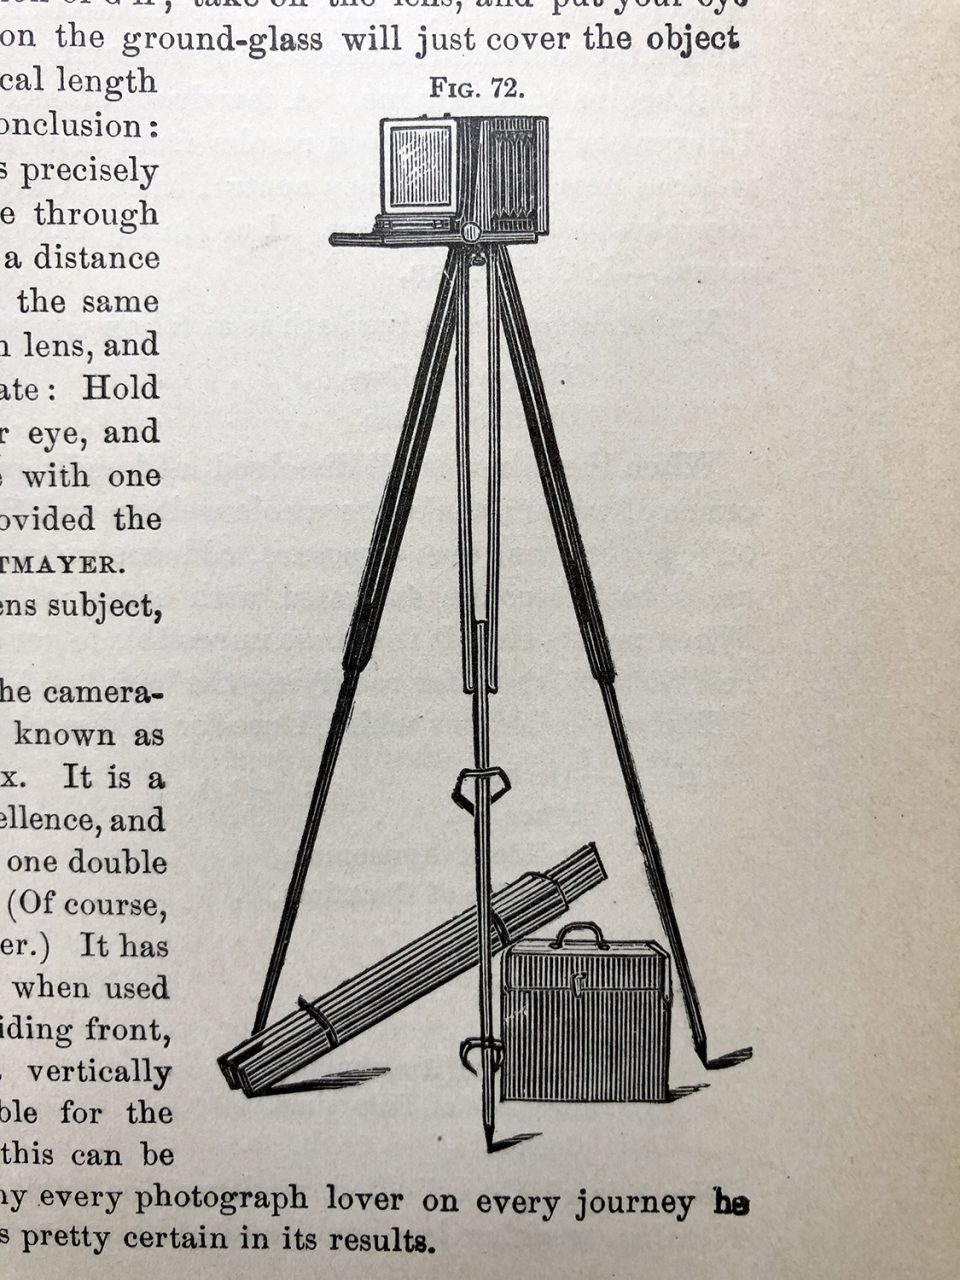 Engraved illustration of a typical camera set-up in the 1880s.